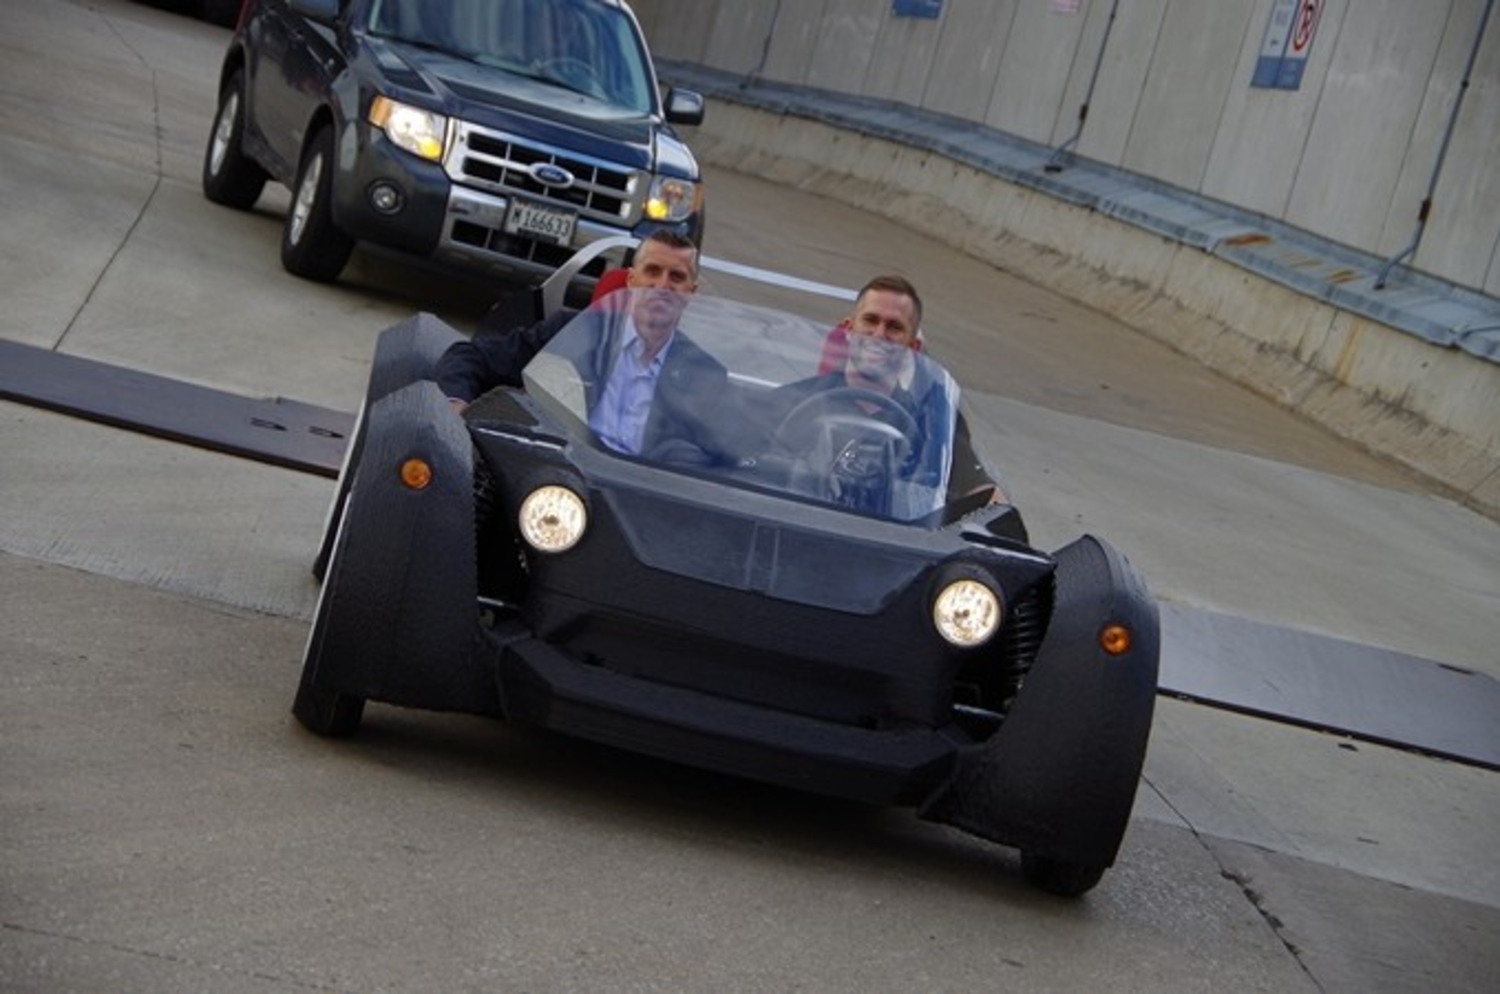 World's First 3D Printed Car Took Years To Design But Just 44 Hours To Print